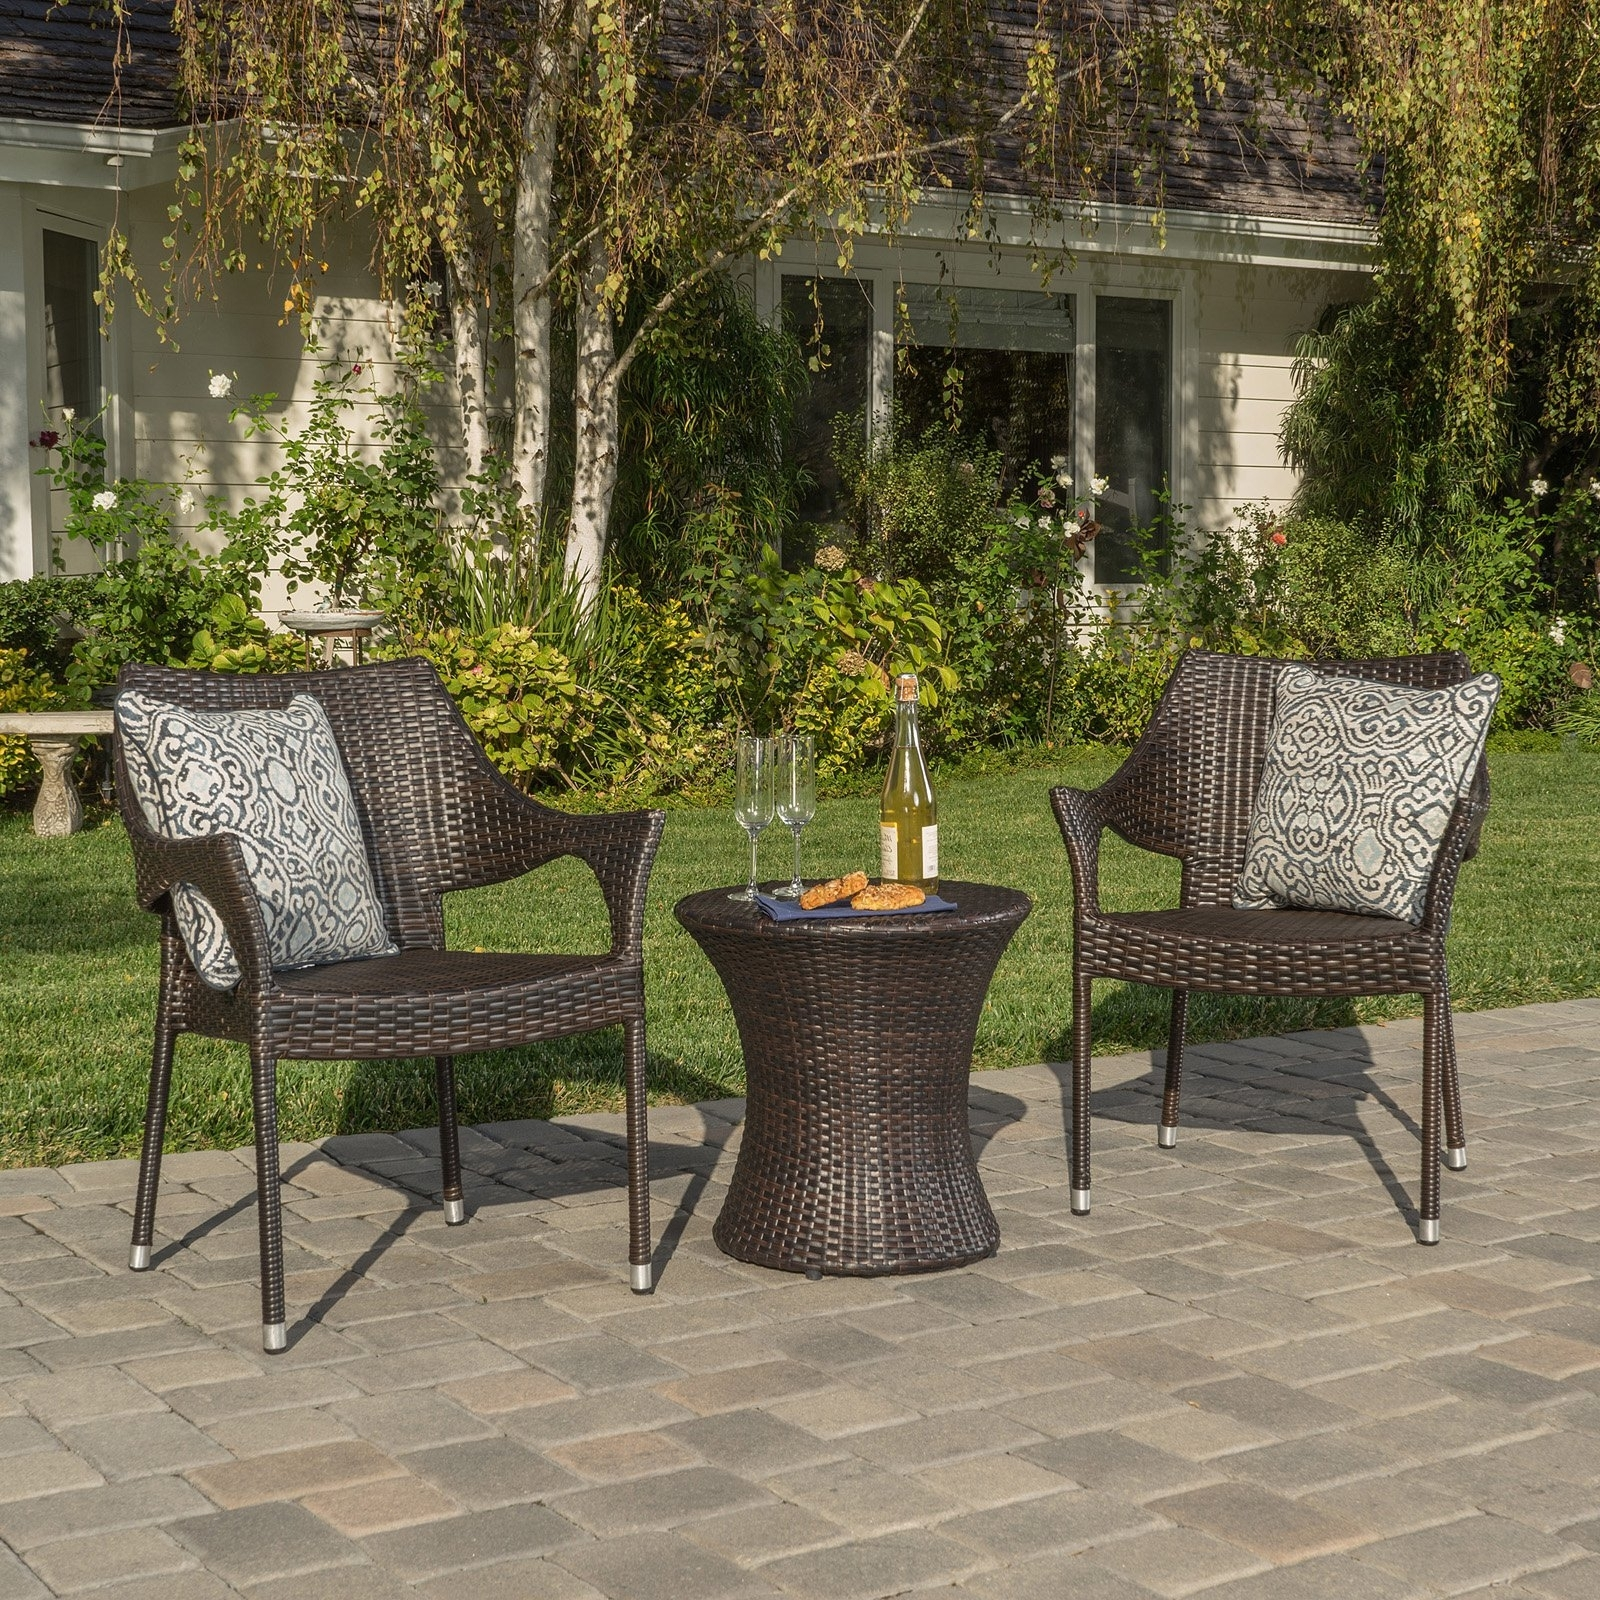 Well Known 46 Patio Conversation Sets Under 300, Patio Conversation Set 4 Piece Within Patio Conversation Sets Under $ (View 6 of 15)